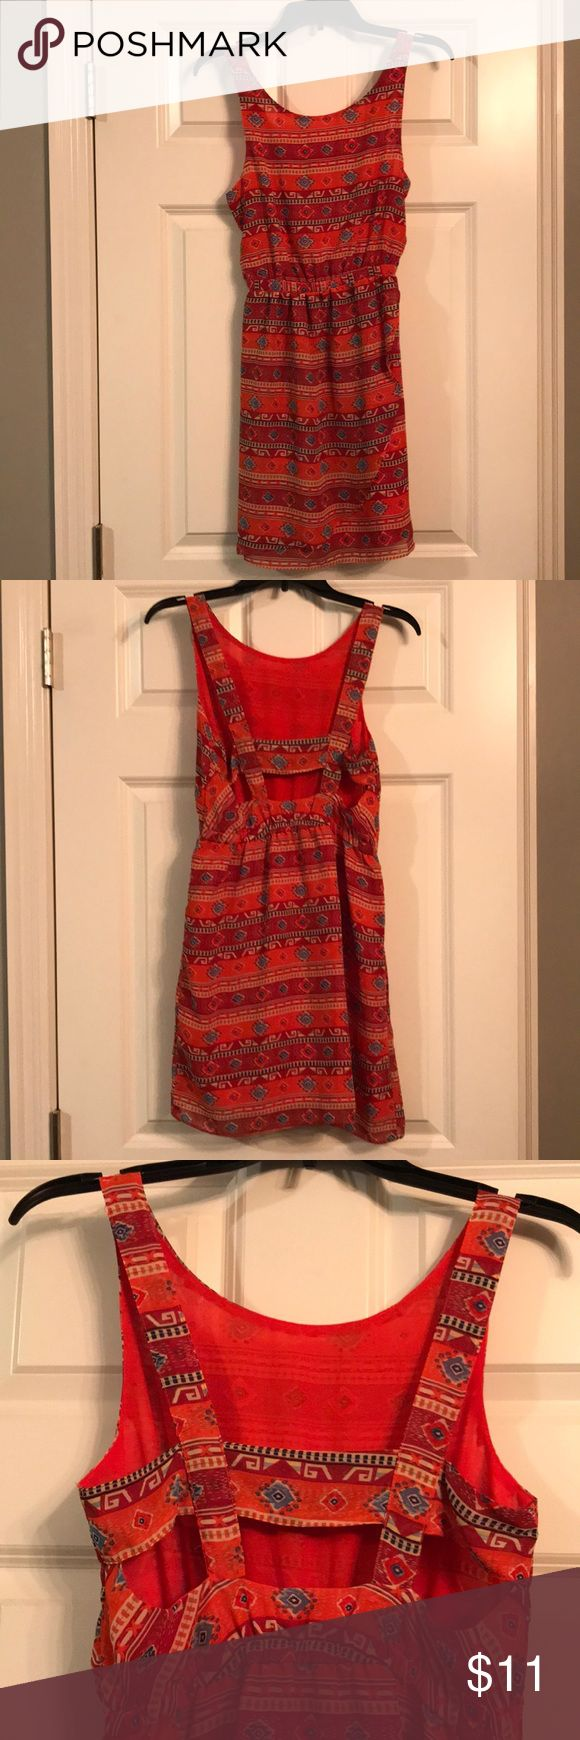 Aztec print sleeveless dress NWT! Aztec print dress with lots of detail. Ruffle in front as shown in picture. Open back detail as well. Never worn-Great condition! Cotton Candy Dresses Mini